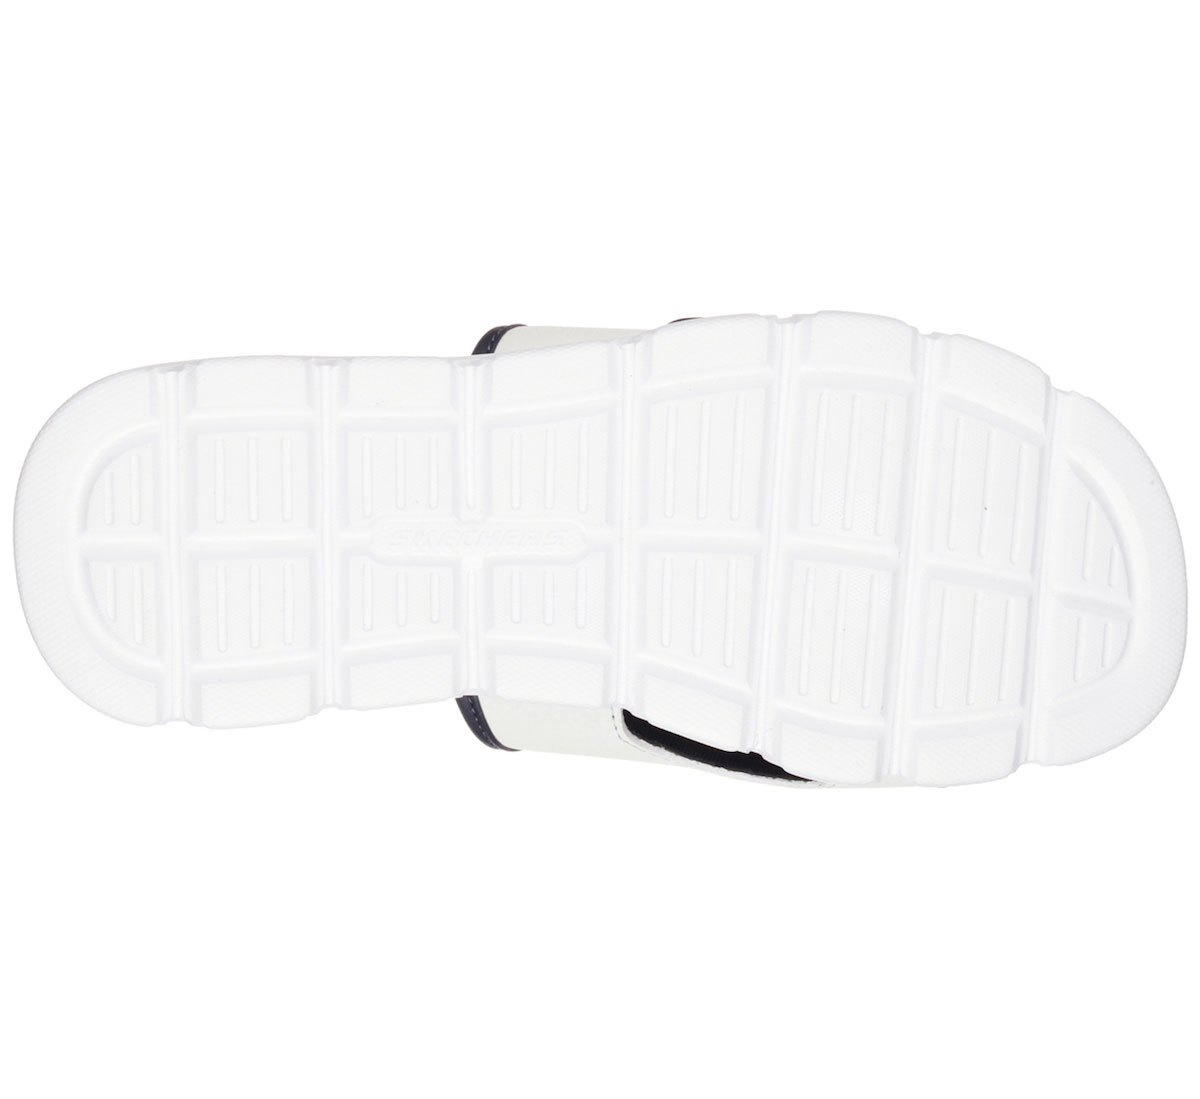 Skechers Mens Wind Swell Sandals Memory Foam Flip